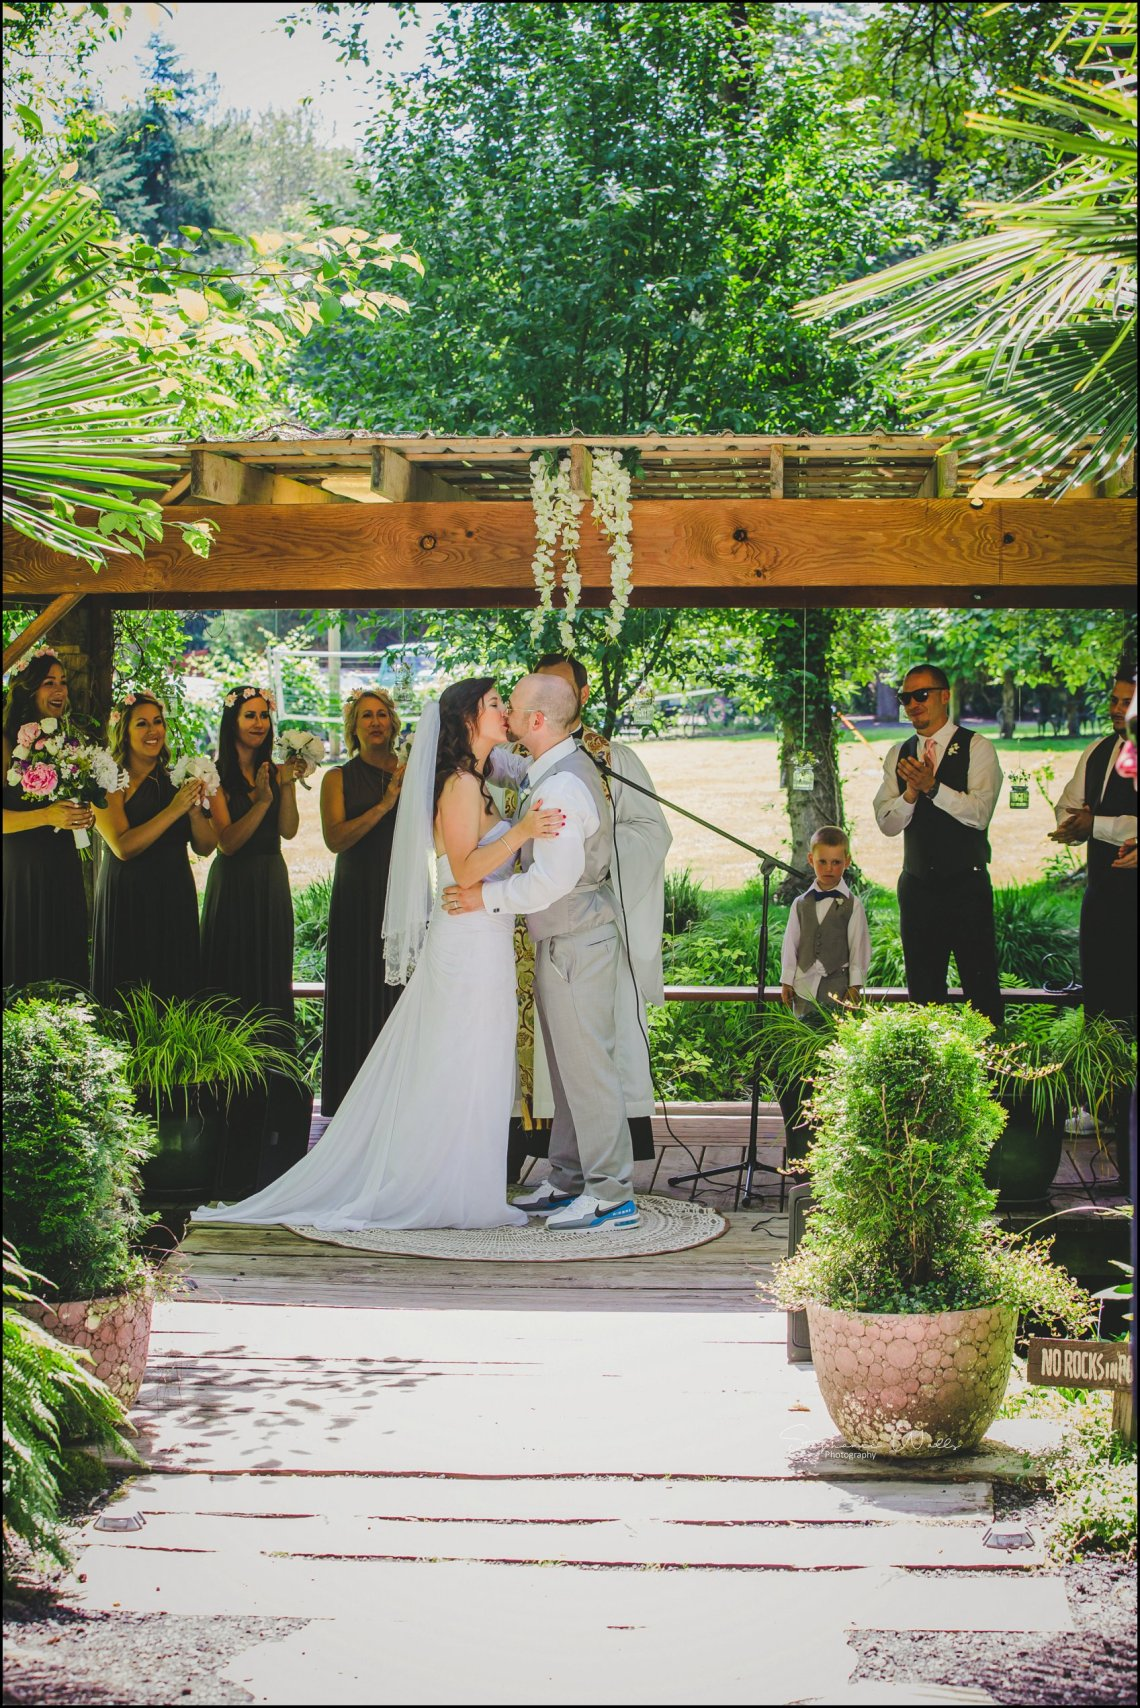 Gauthier292 Maroni Meadows DIY Wedding with Catherine and Tyler